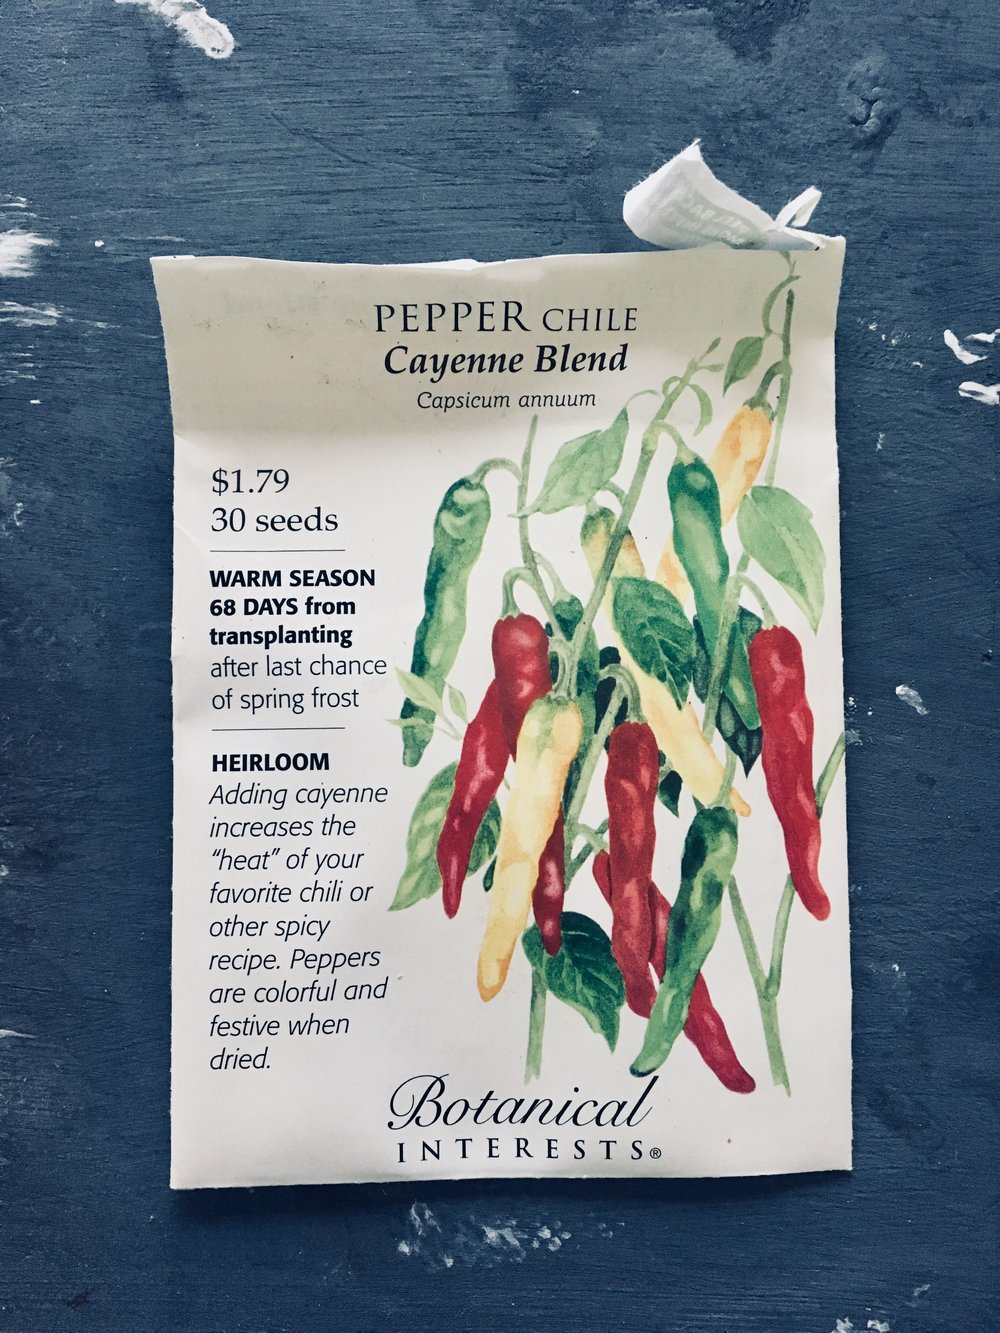 Peppers - Peppers take a long time to germinate and need hotter weather before they go outside. Start atleast 8 weeks before frost date. {This timing was spot on for me, 6 weeks to second leaf and now at 9 weeks (May 18) ready for the ground.}I started 6 seed pots of sweet peppers and 6 of spicy. The spicy ones take longer to germinate but they catch up pretty quick.I had little issue with plant height or any growing concerns with the peppers. So far, they have been the easiest to grow.